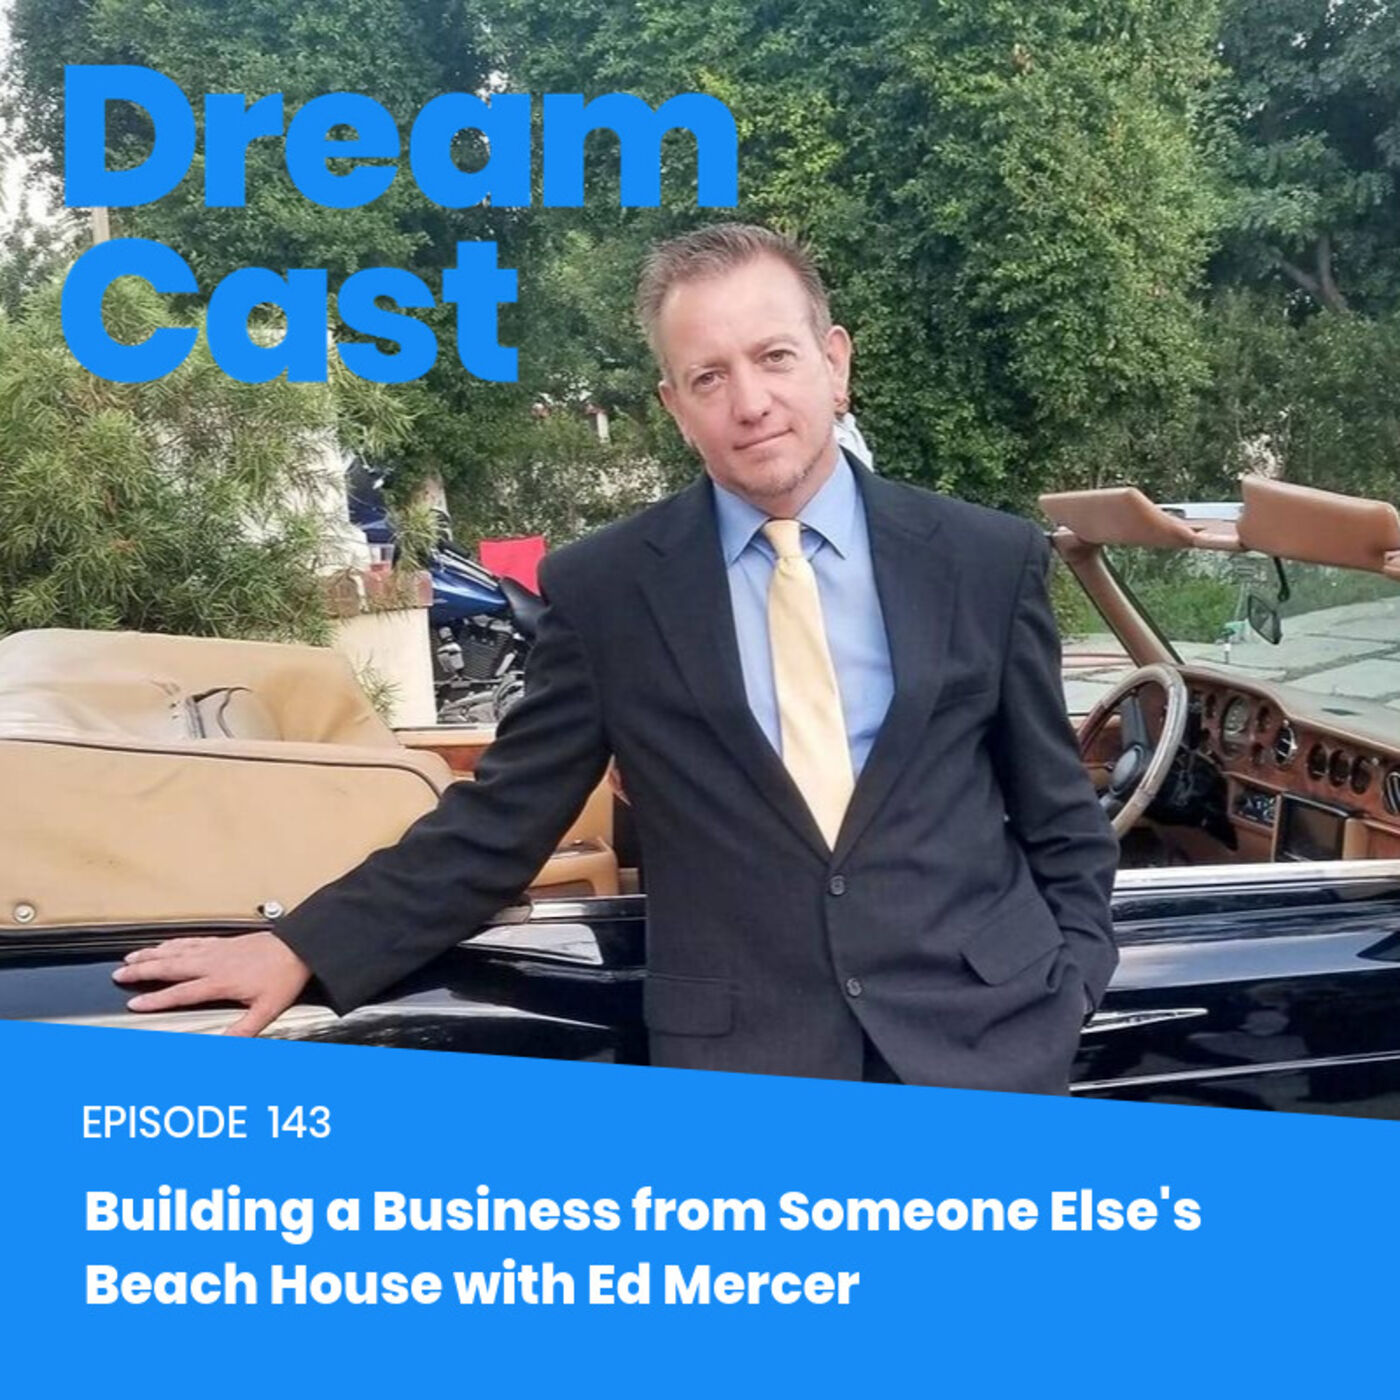 Episode 143 - Building a Business from Someone Else's Beach House with Ed Mercer